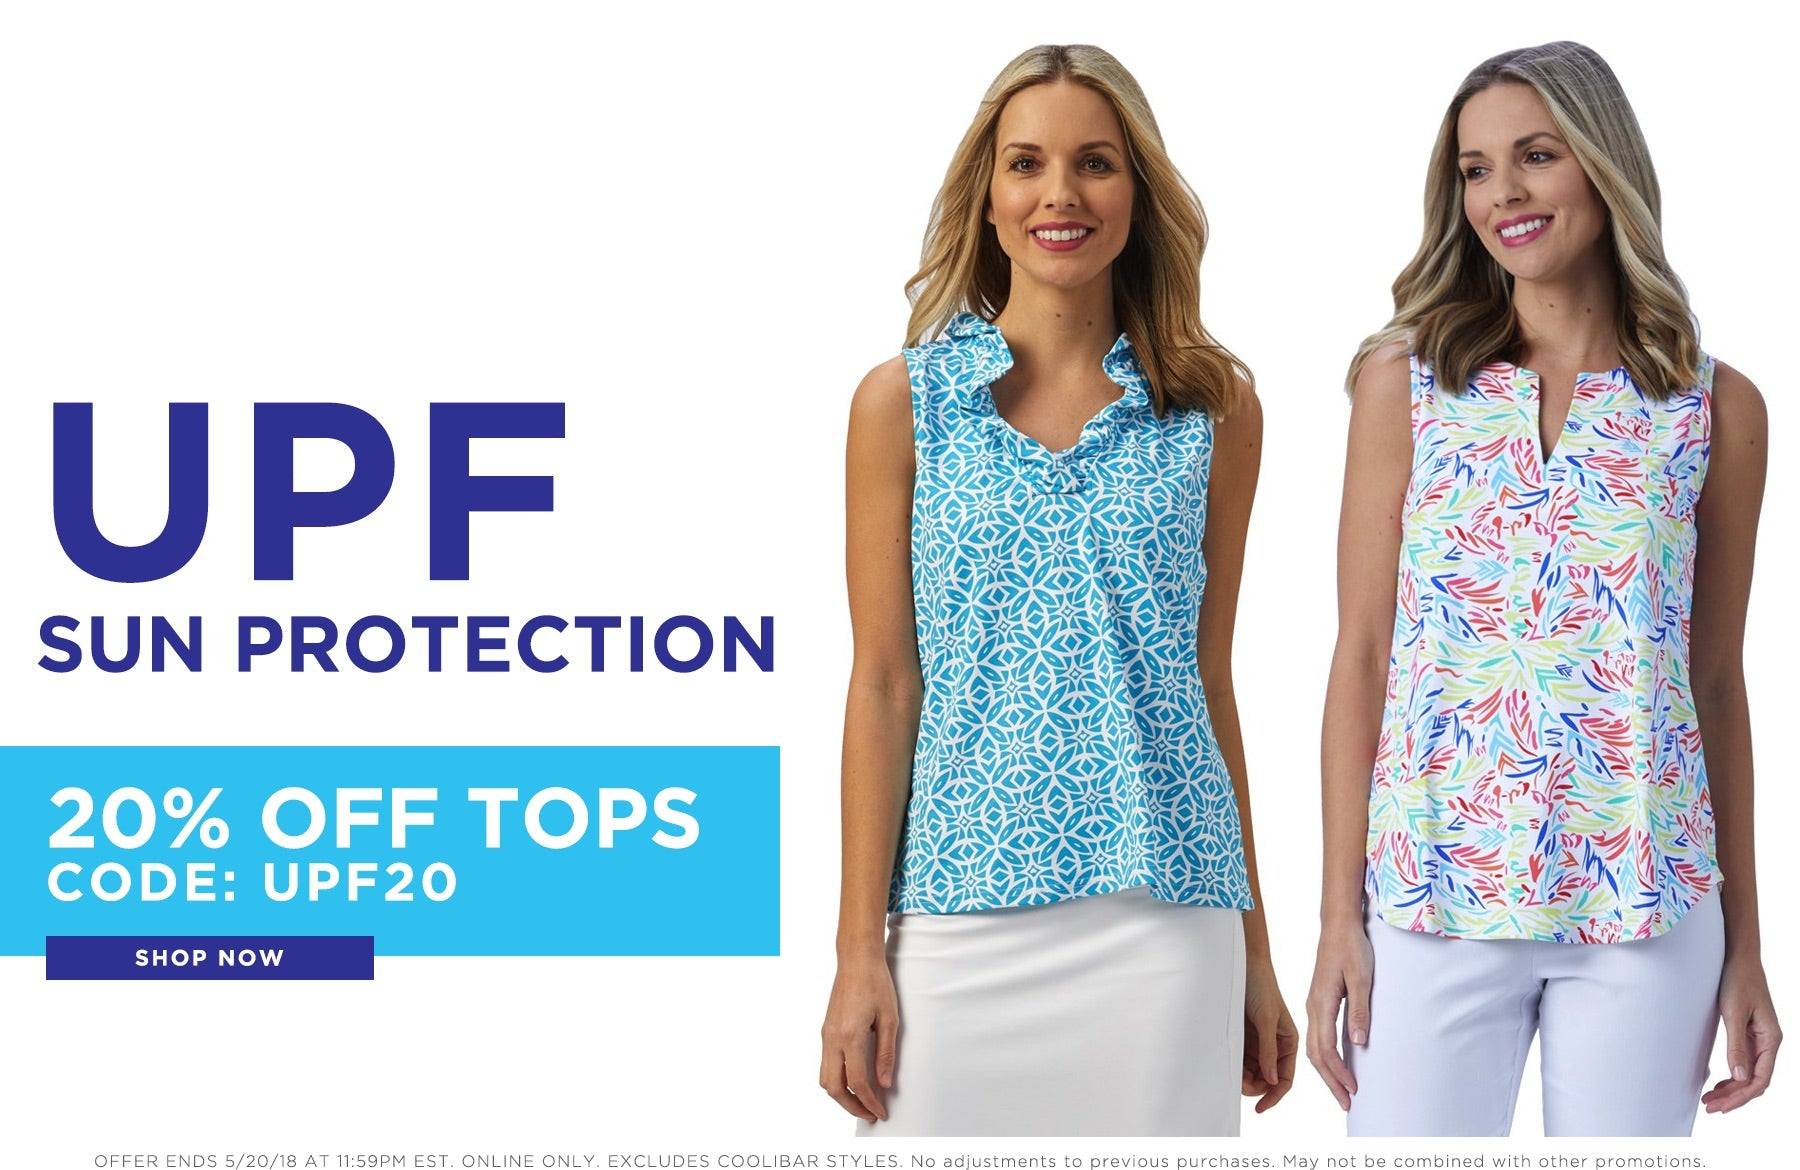 UPF Sun Protection. 20% Off Tops. Code: UPF20. Shop Now.